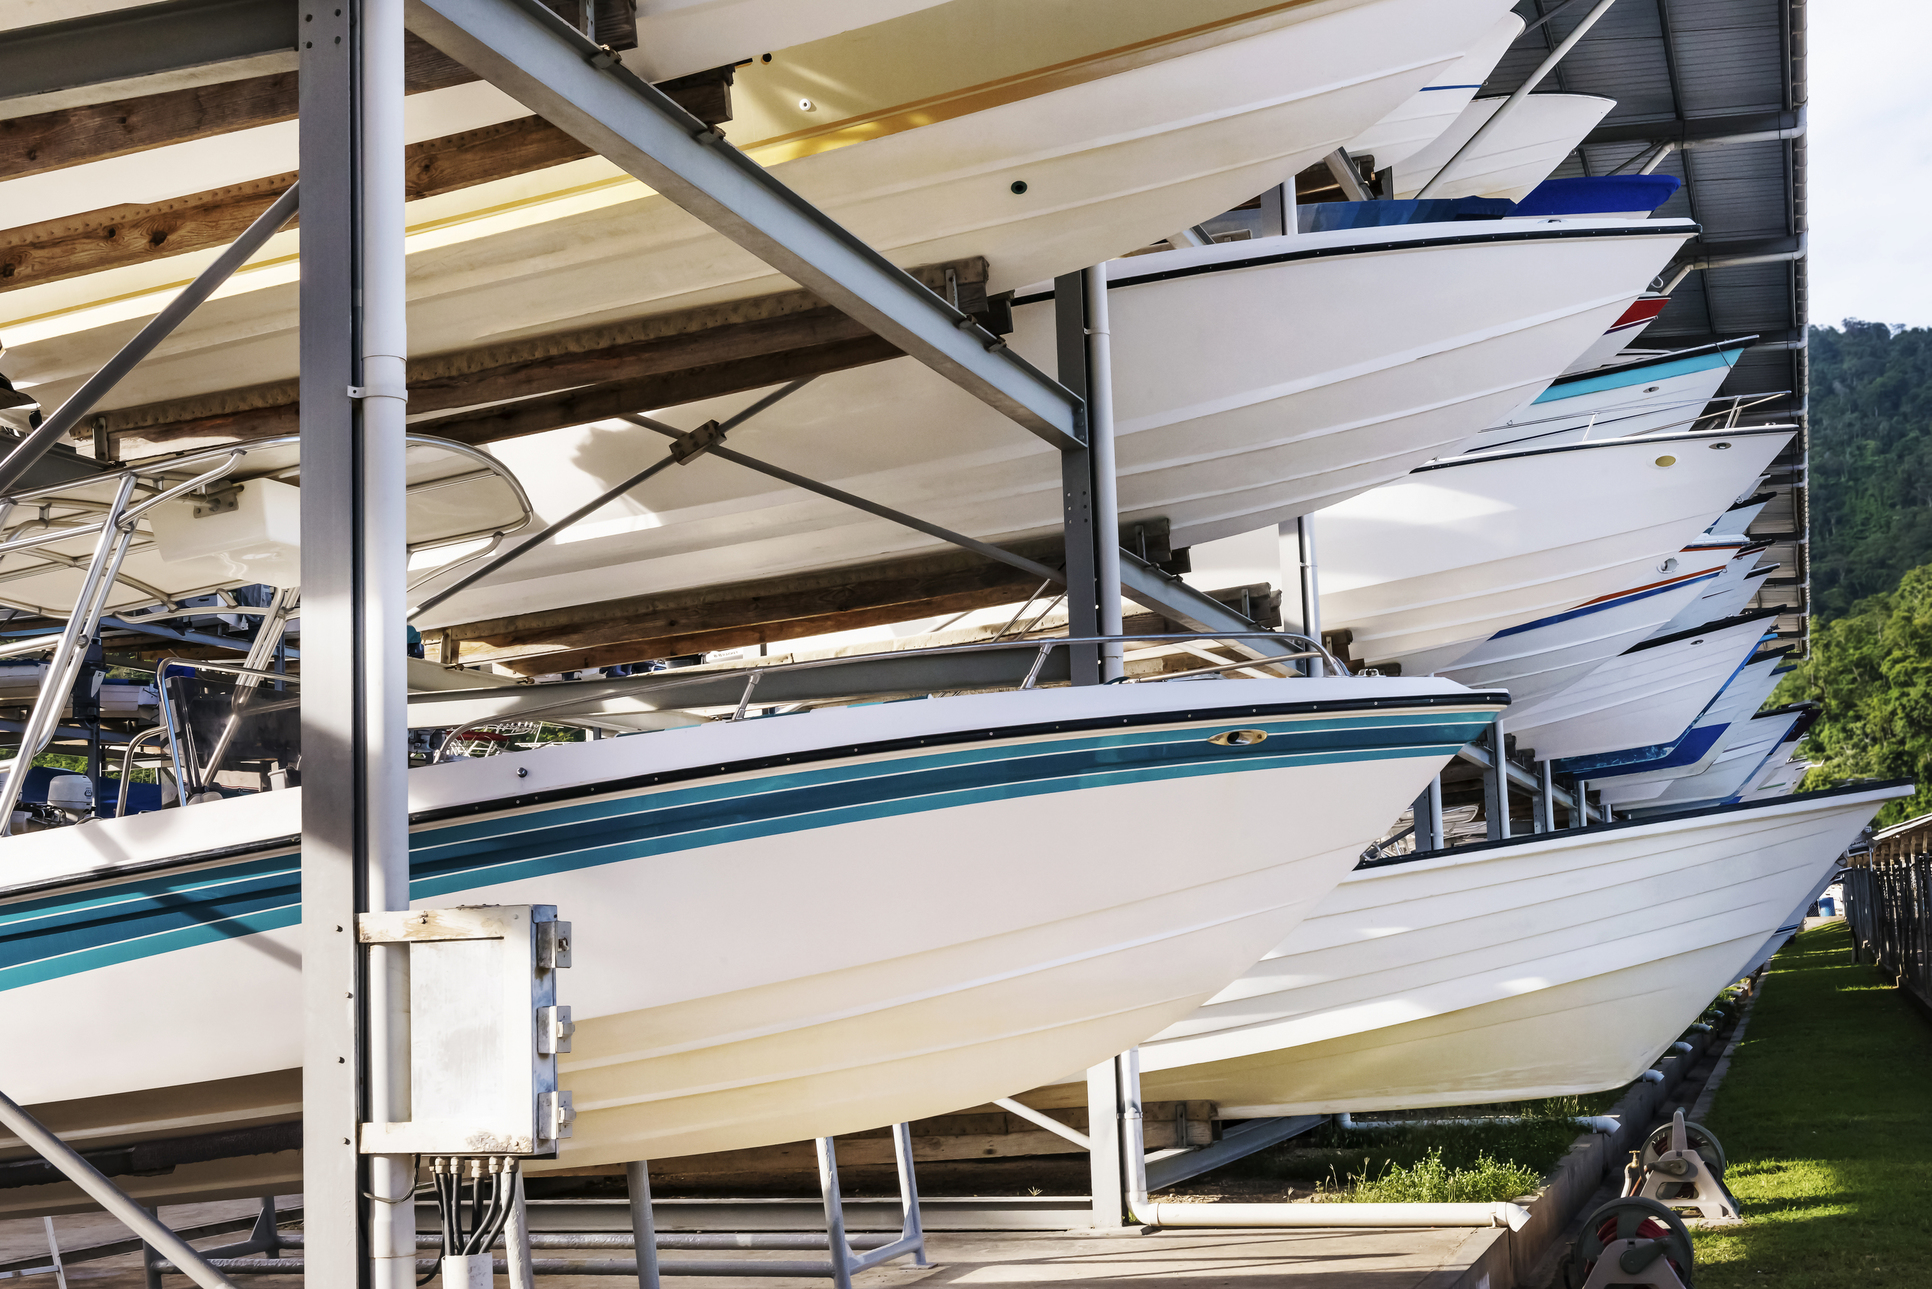 The Essential Role of Lifts for Boat Care and Maintenance